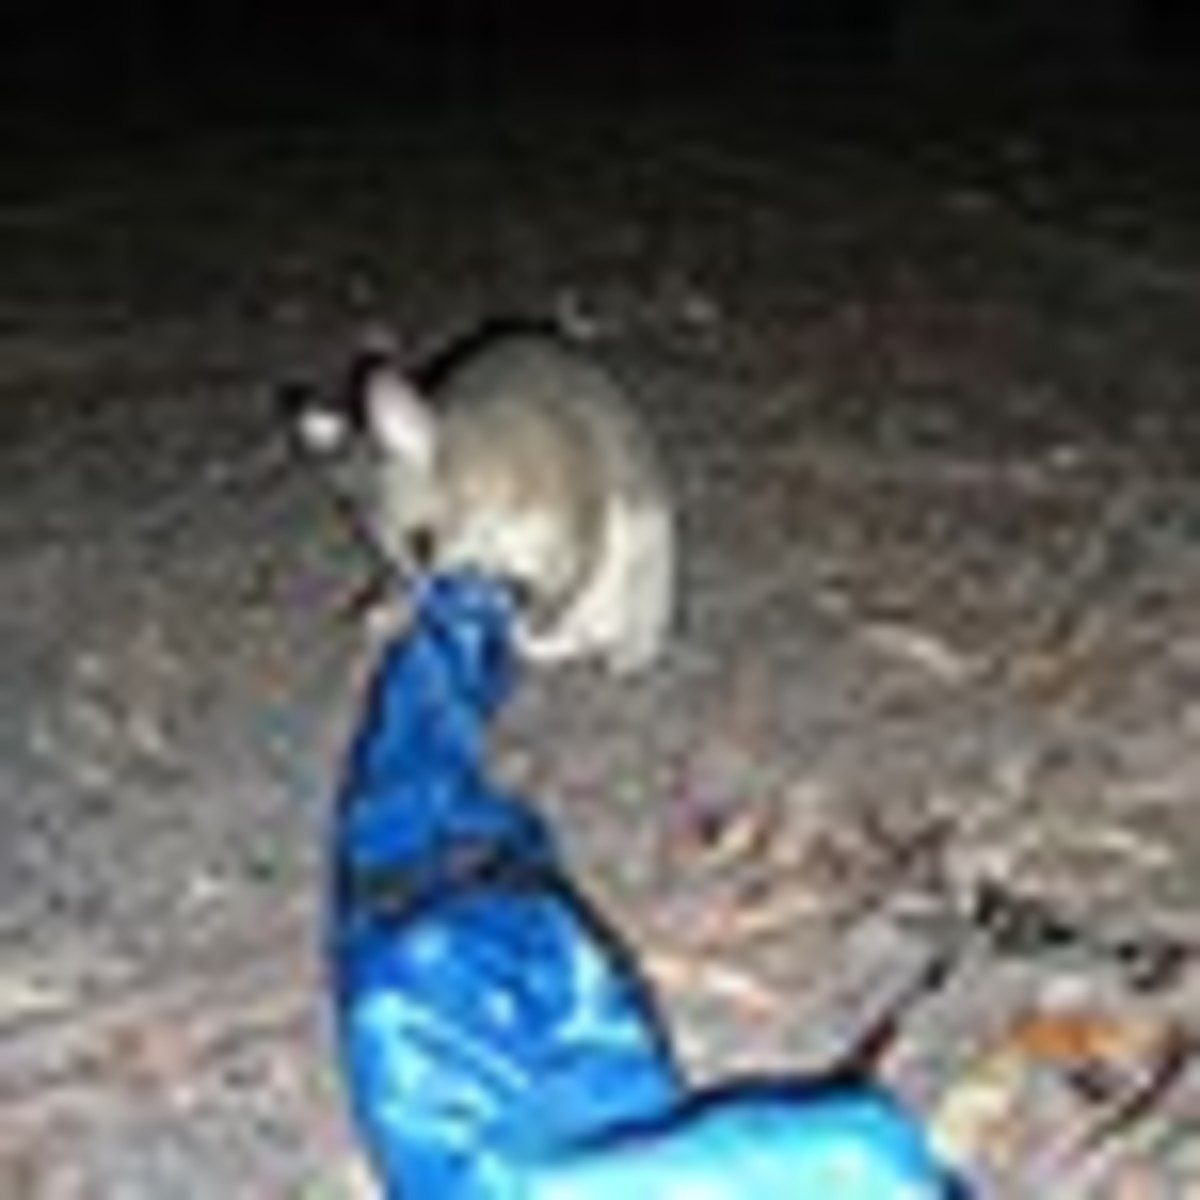 Watch out for cheeky possums at night ! This is at a National Park in NSW !